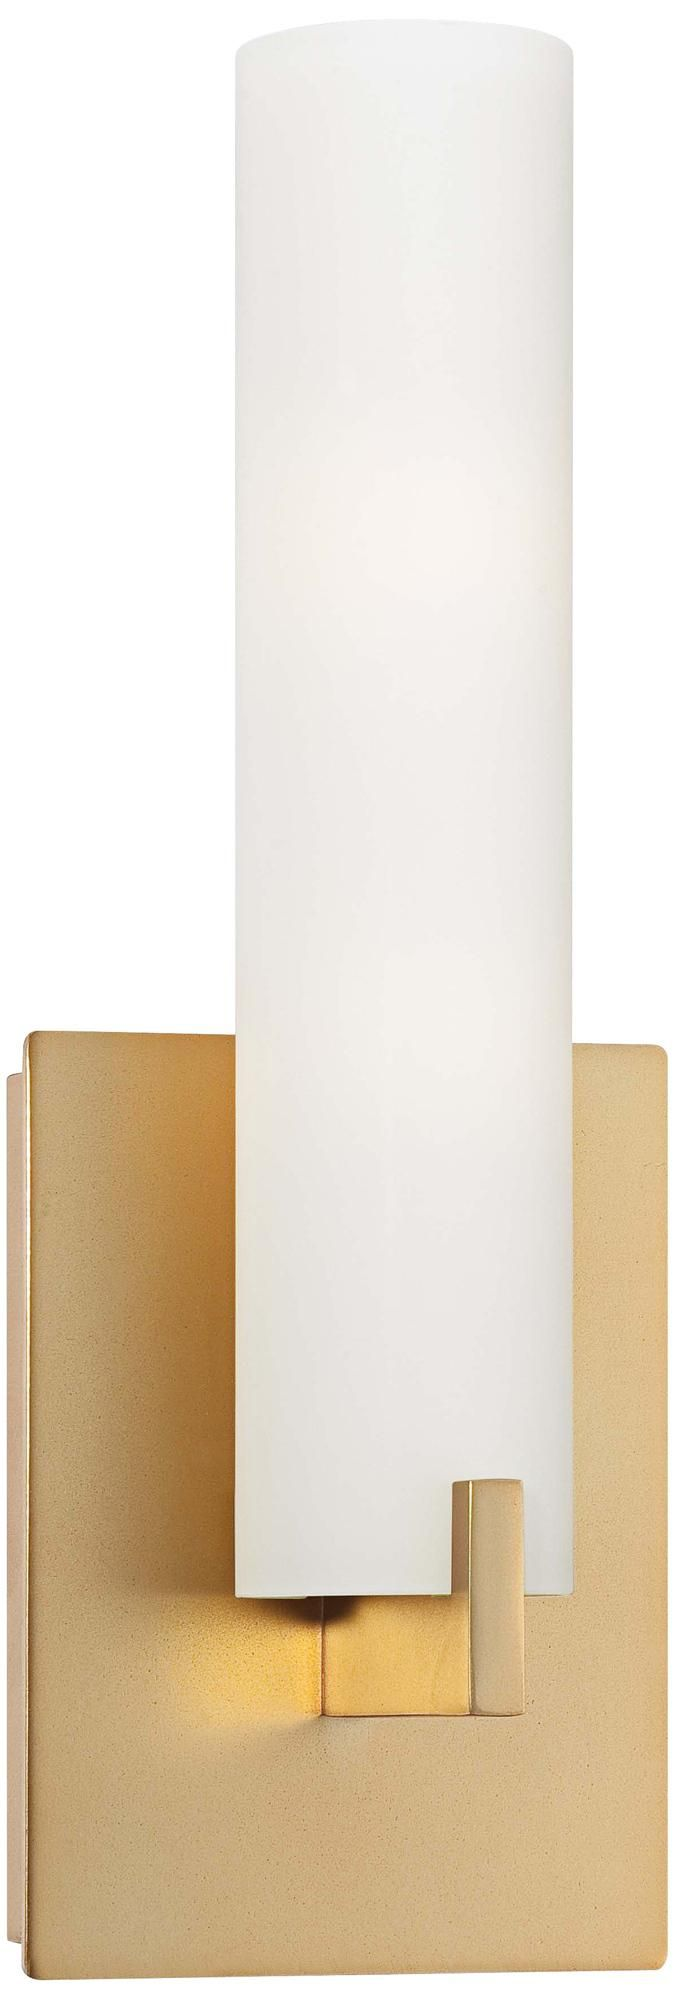 George Kovacs 13 1/4 High ADA Compliant Gold Wall Sconce -